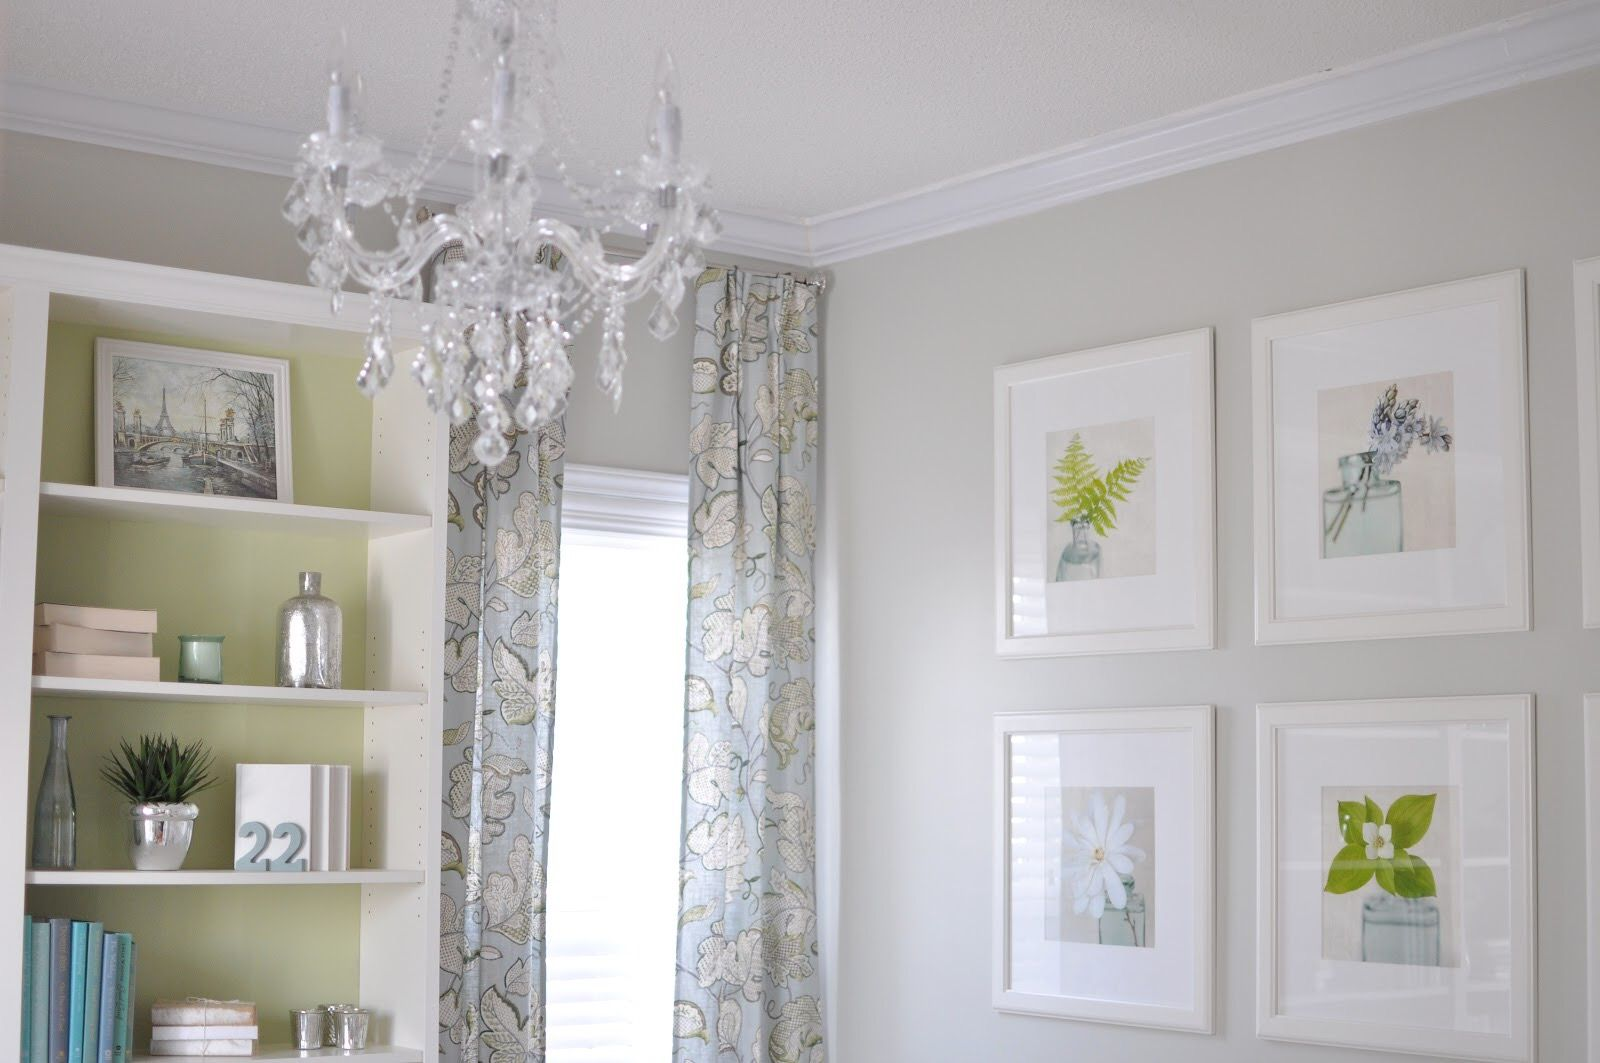 Wall Color Sedate Gray Sherwin Williams Paint Colors In 2018 Pinterest House House Tours